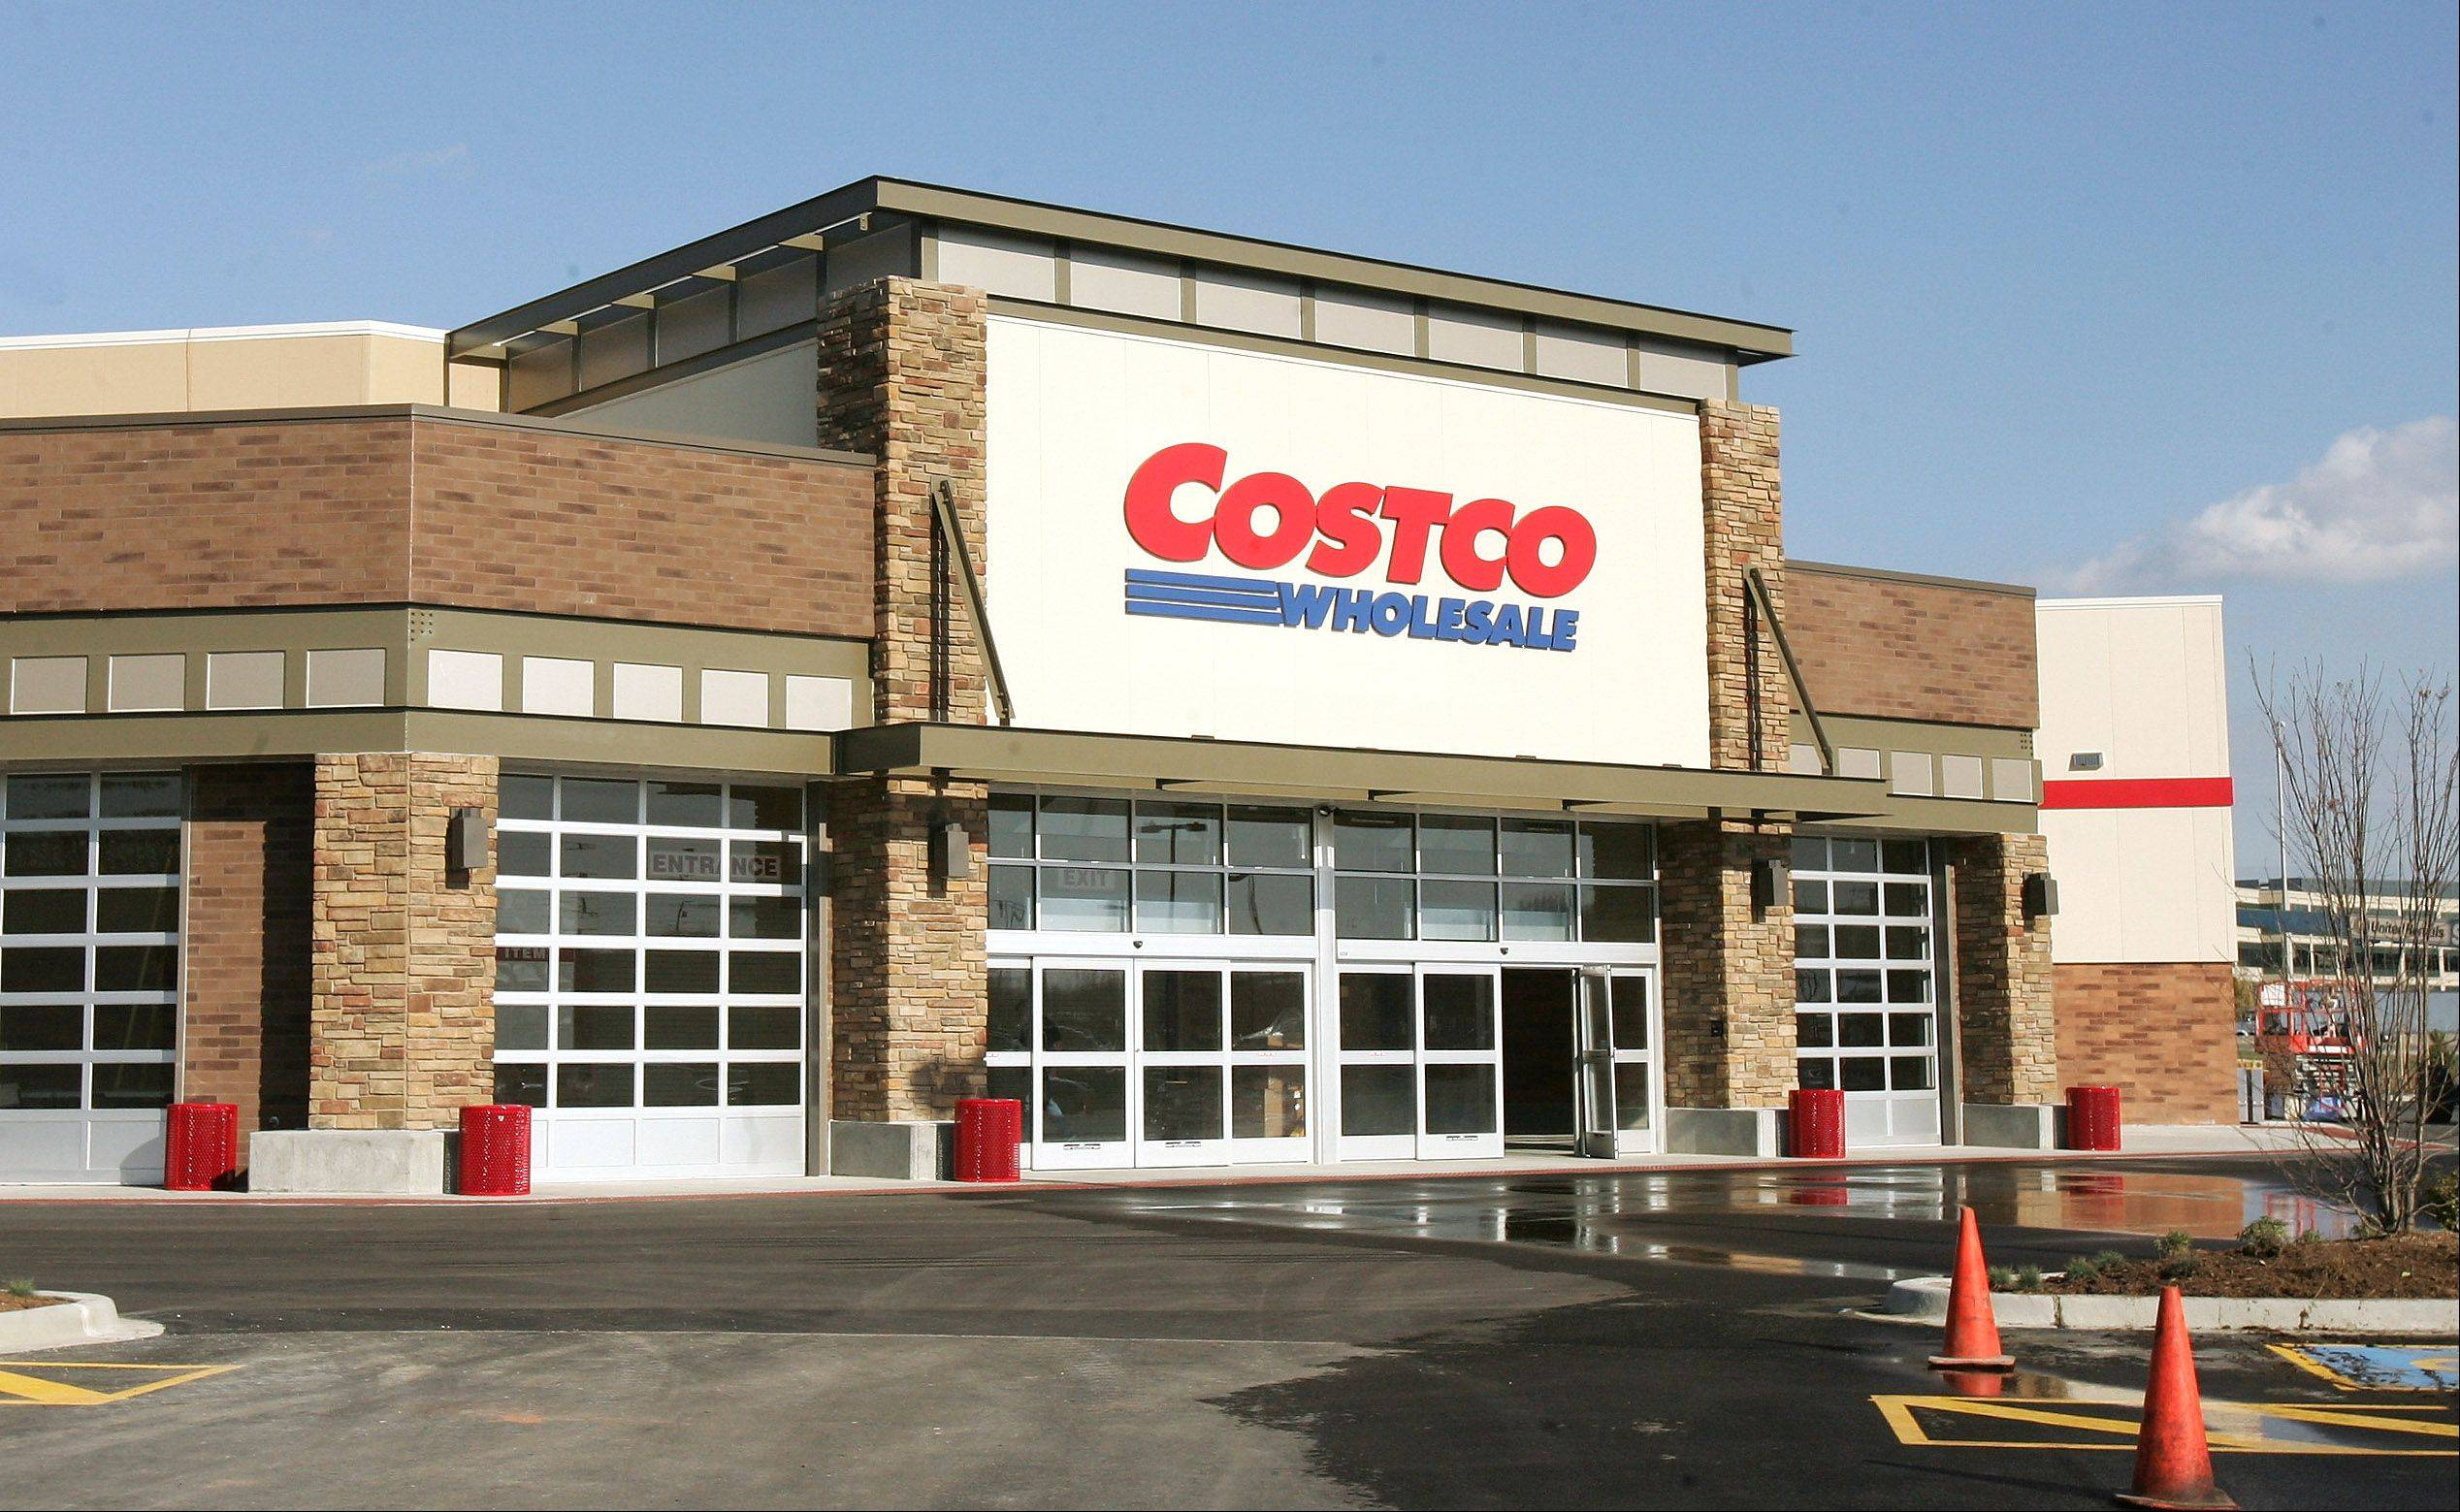 Gilbert R. Boucher III | Daily Herald file photoCostco's sales at stores open at least a year rose 3 percent in October, beating Wall Street's expectations.